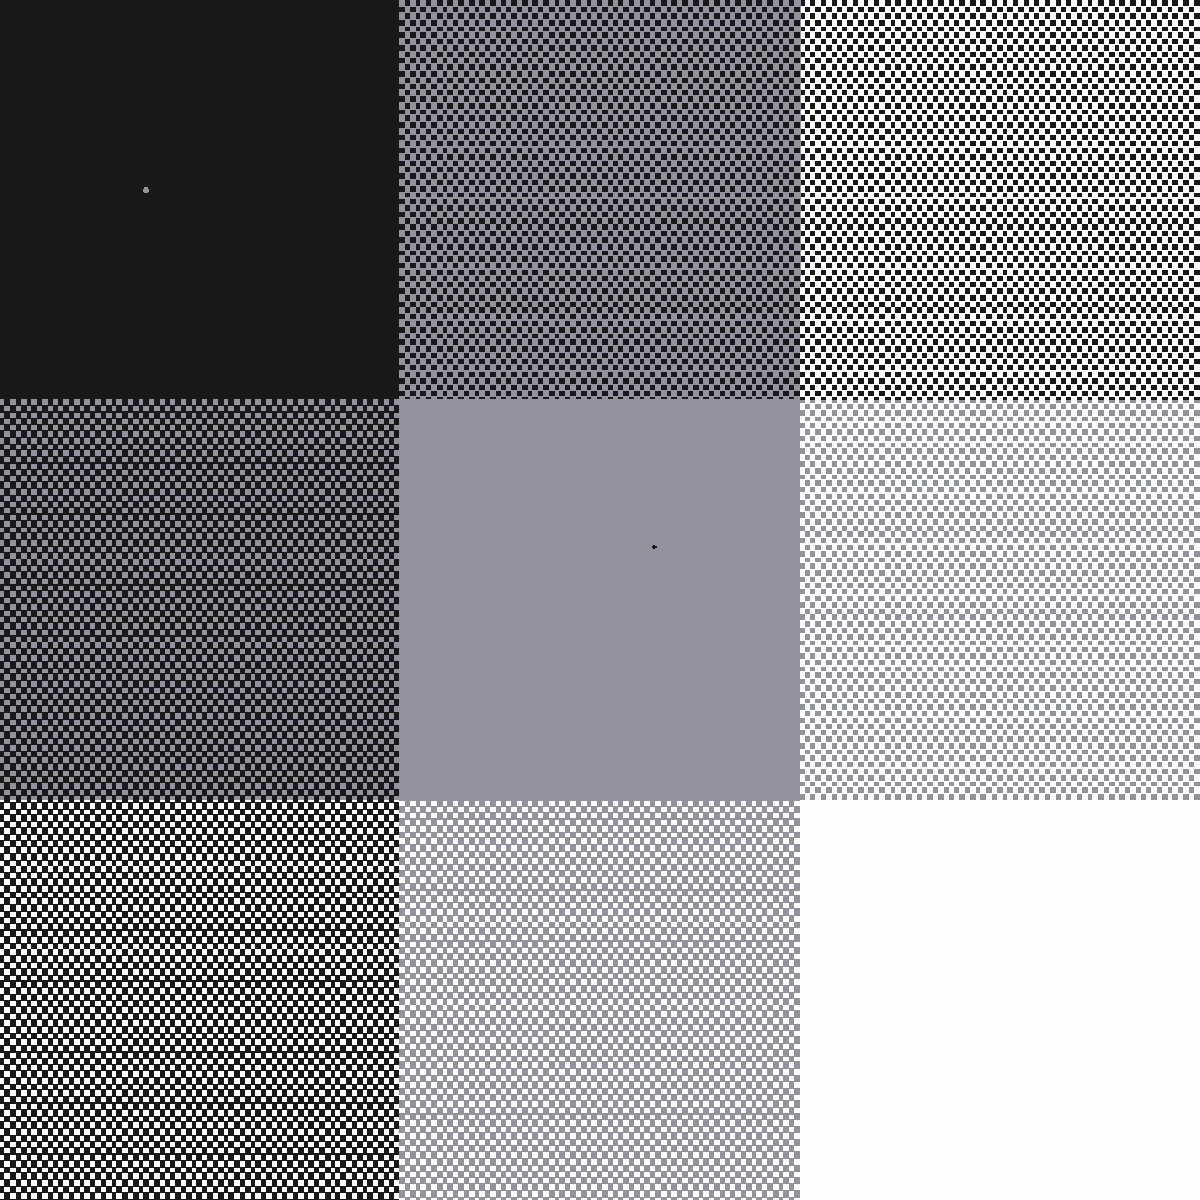 Waverly Inspirations Gingham Onyx, 100% Cotton Yarn Dye Fabric, Apparel Fabric, Quilting fabric, Home Decor ,44'', 90GSM, Cut By The Yard